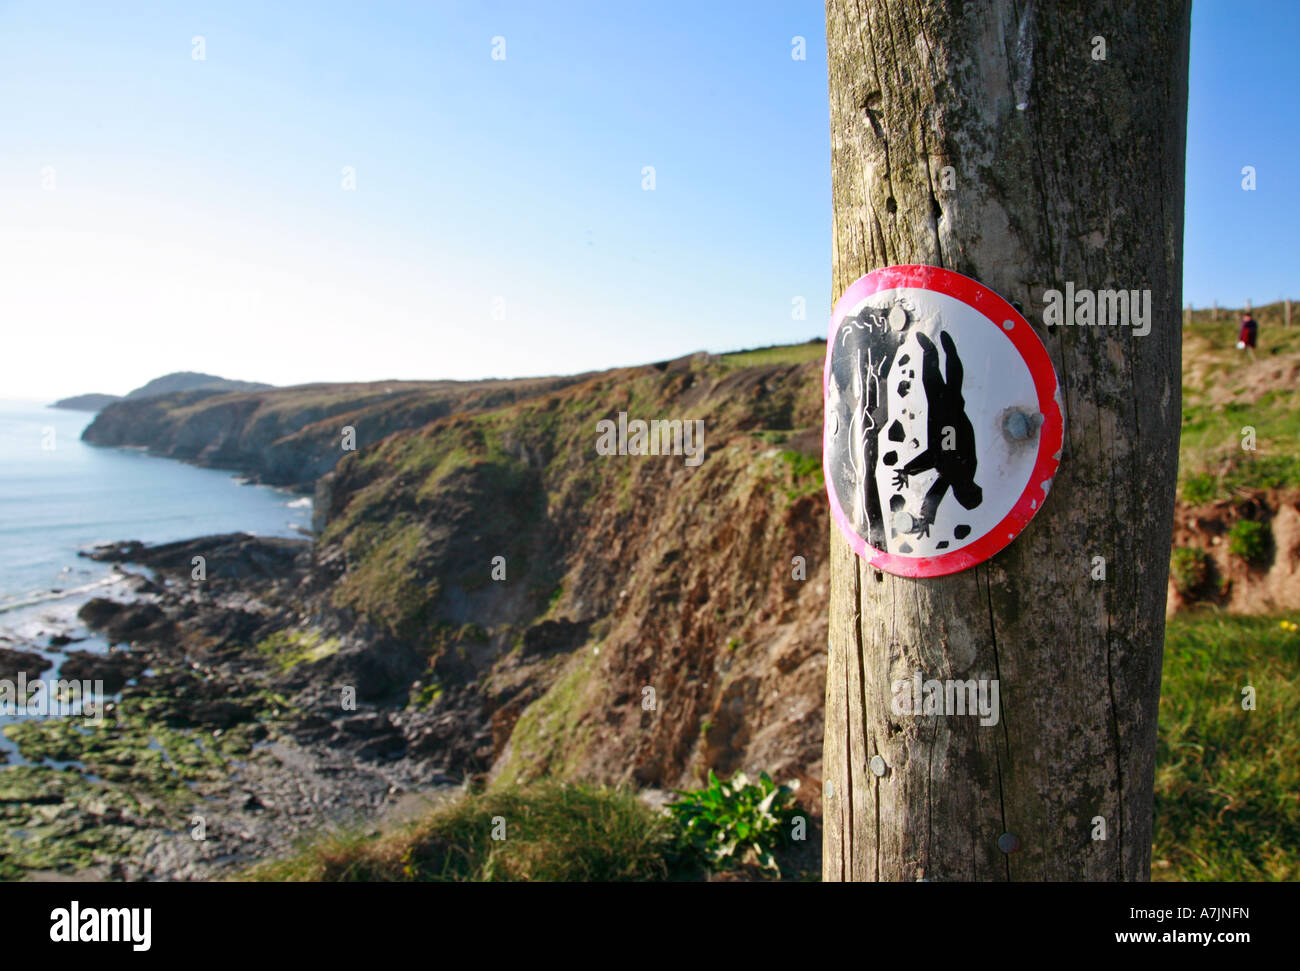 Beware steep cliffs warning sign on the North Pembrokeshire coastal footpath national trail - Stock Image